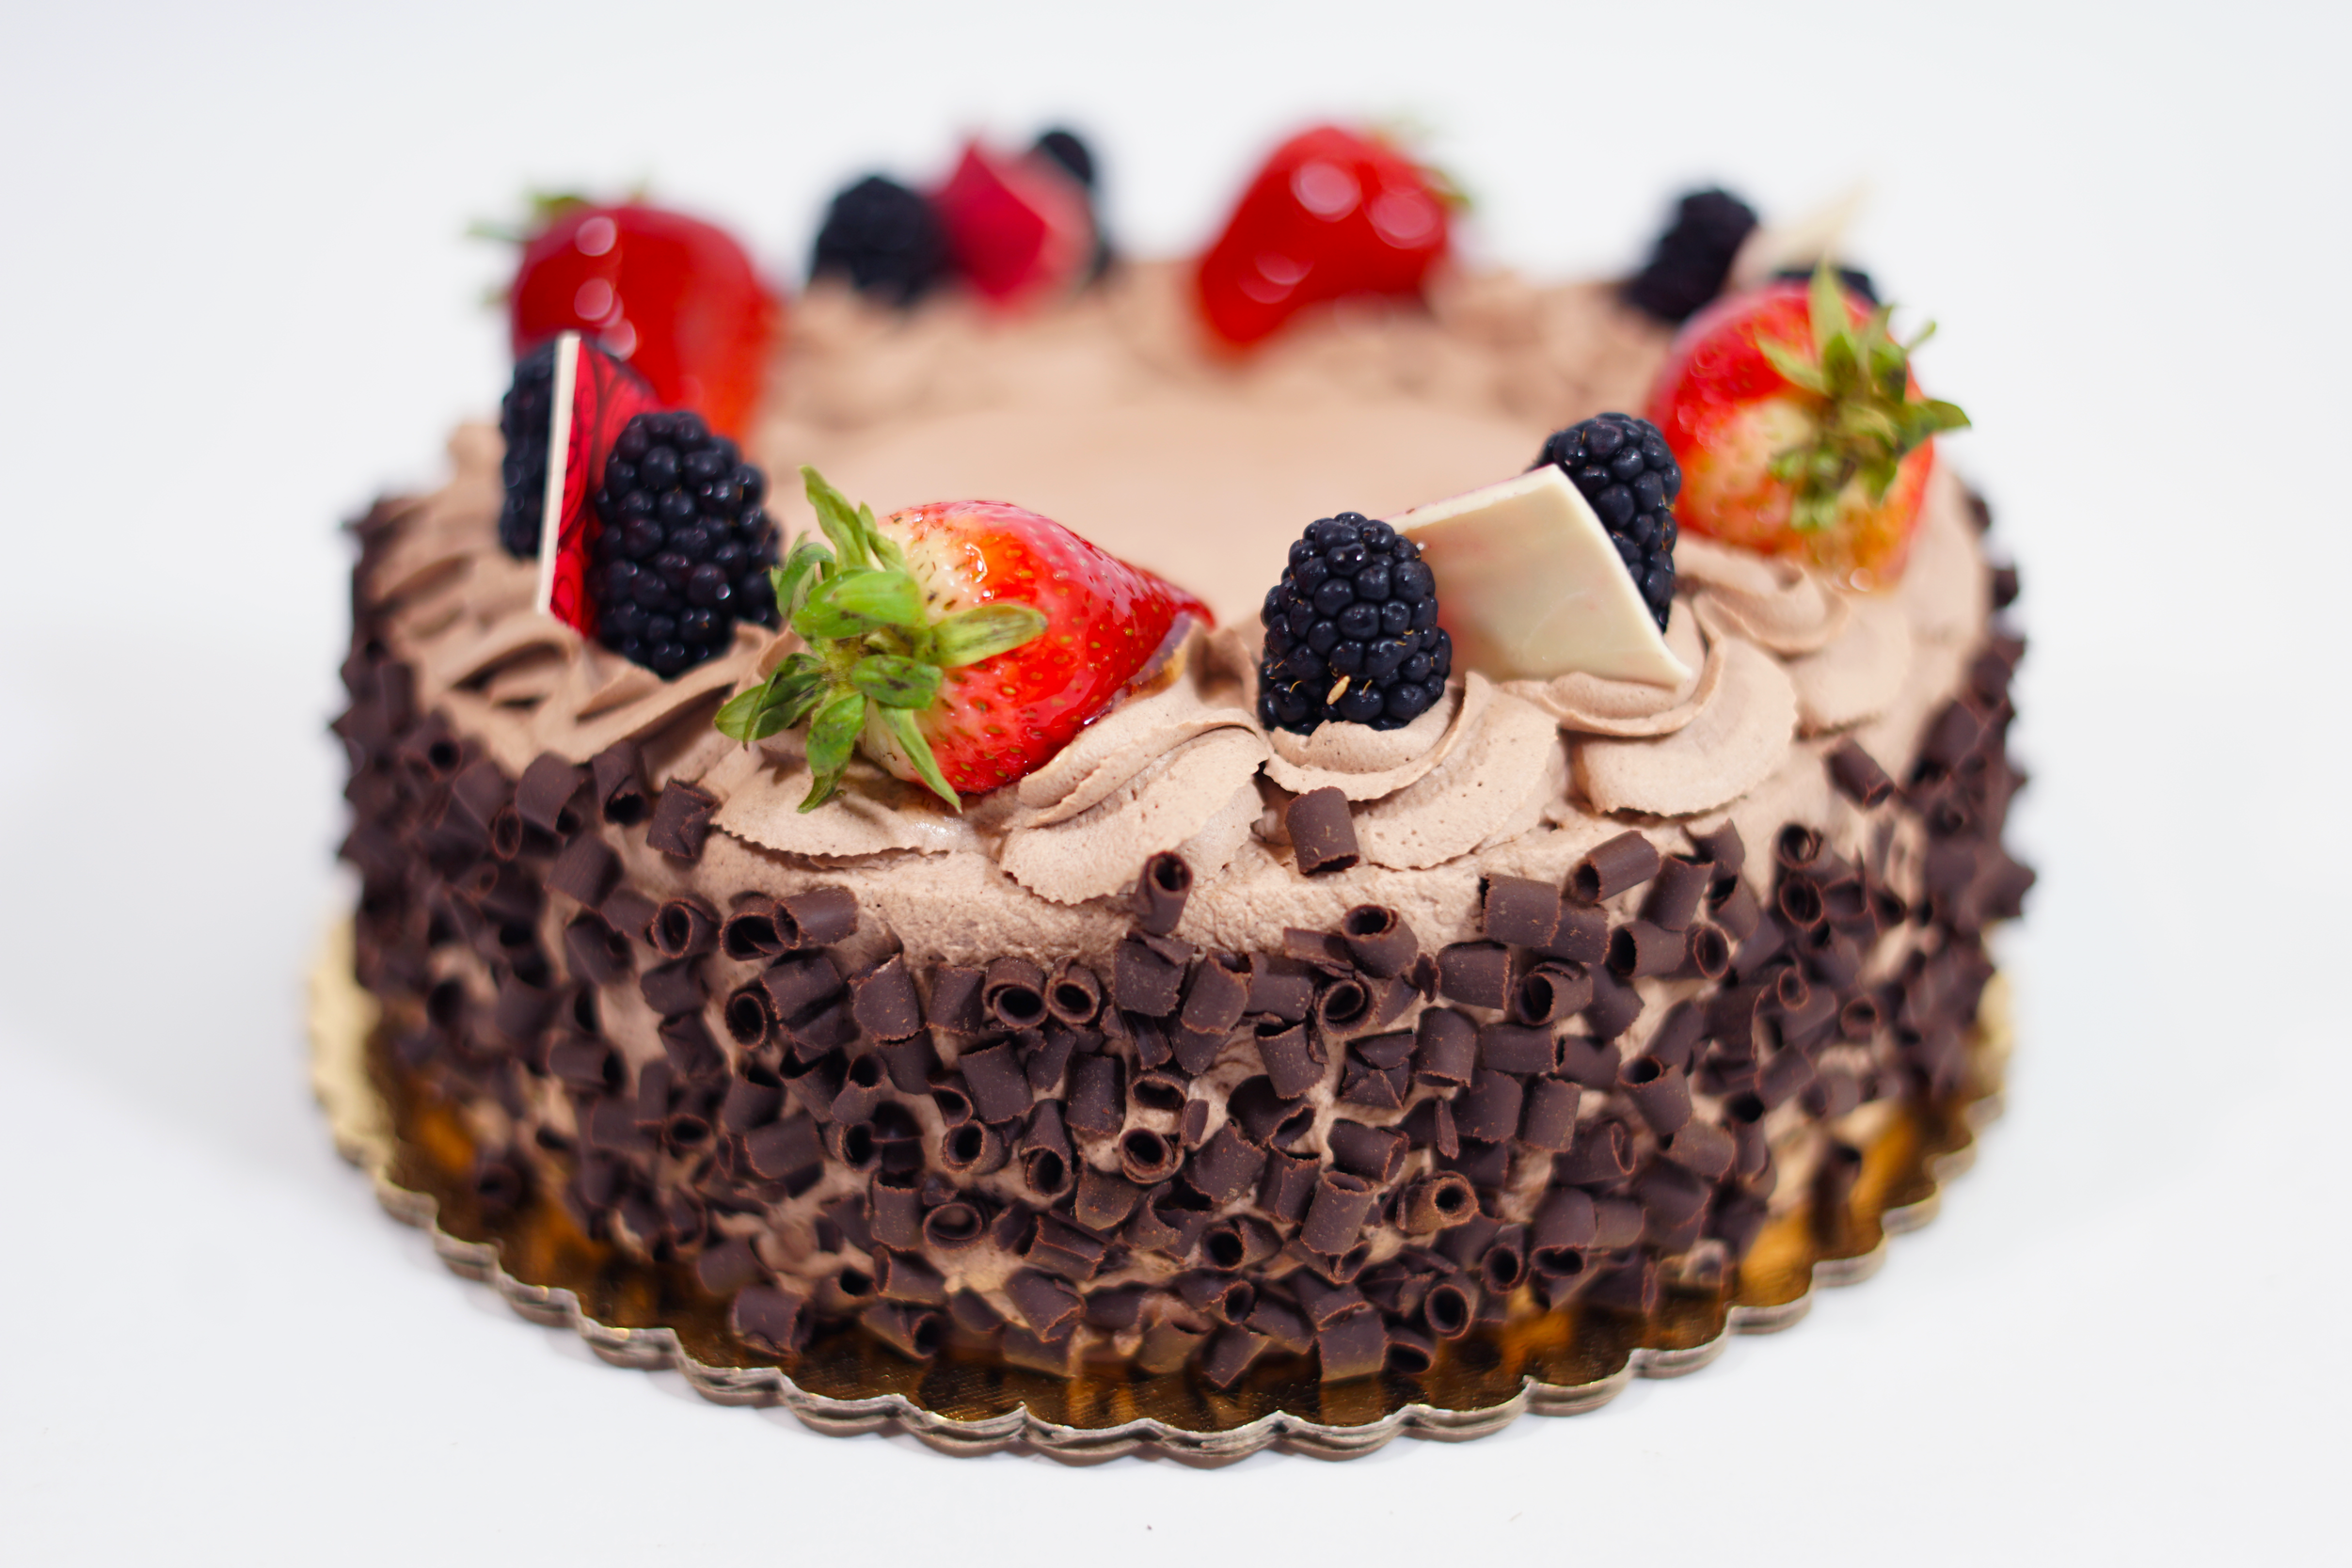 Marquis - Chocolate cake with raspberry syrup, chocolate Bavarian cream, and a layer of apricot preserve filling. Iced with chocolate whipped cream and sides covered with chocolate curls.